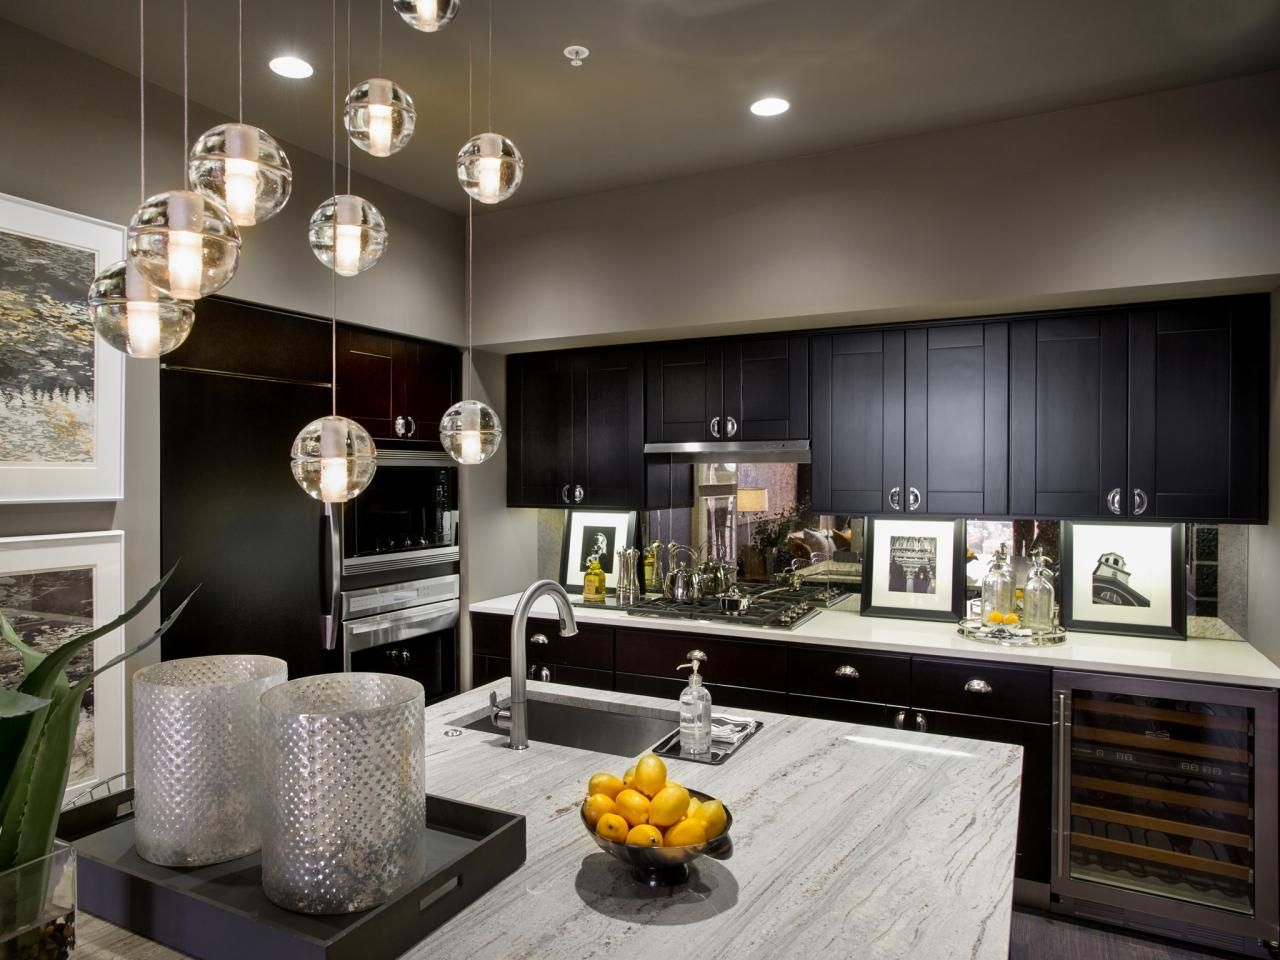 Pictures of kitchen cabinets ideas u inspiration from hgtv